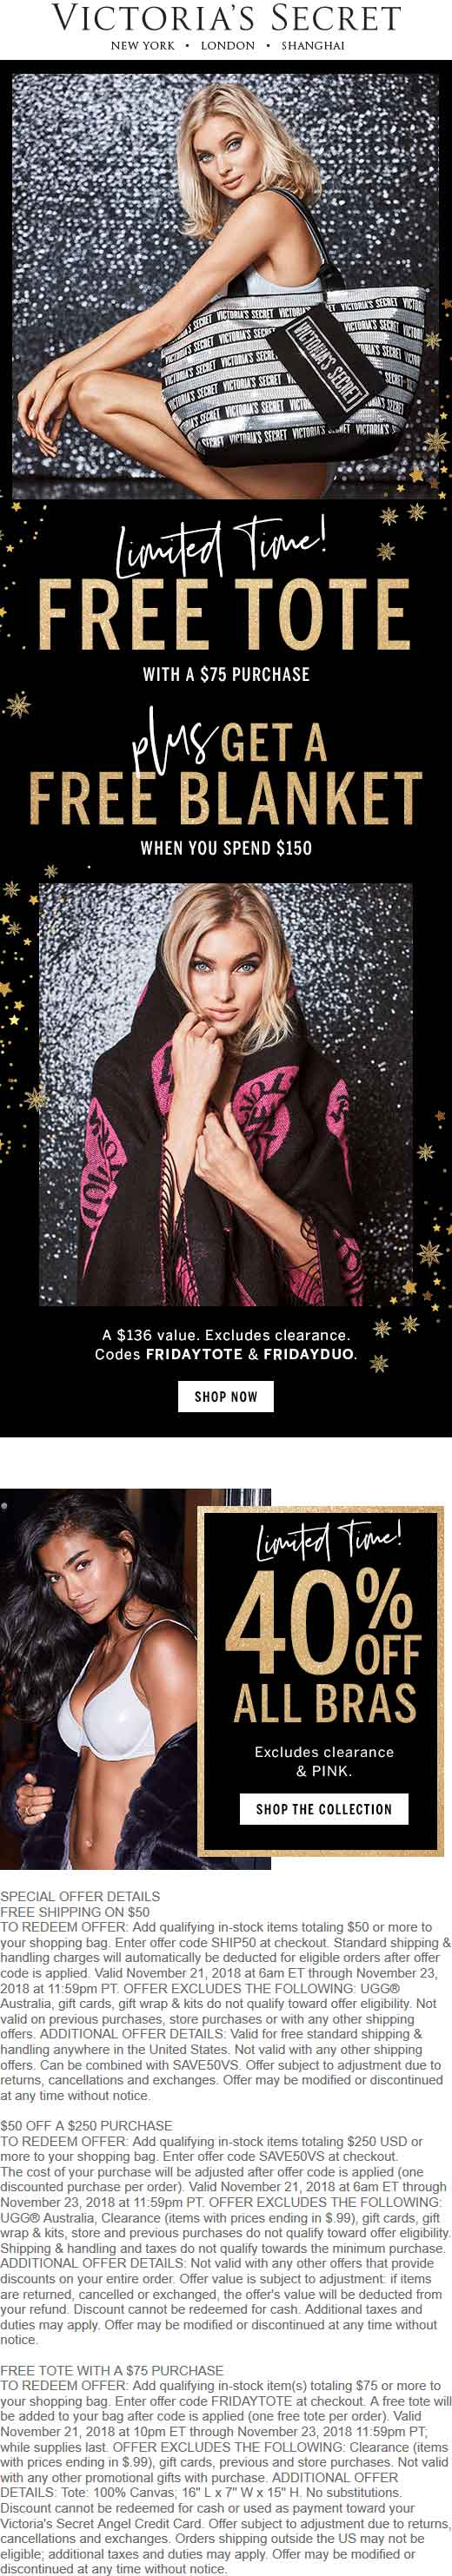 Victorias Secret Coupon May 2019 40% off bras at Victorias Secret